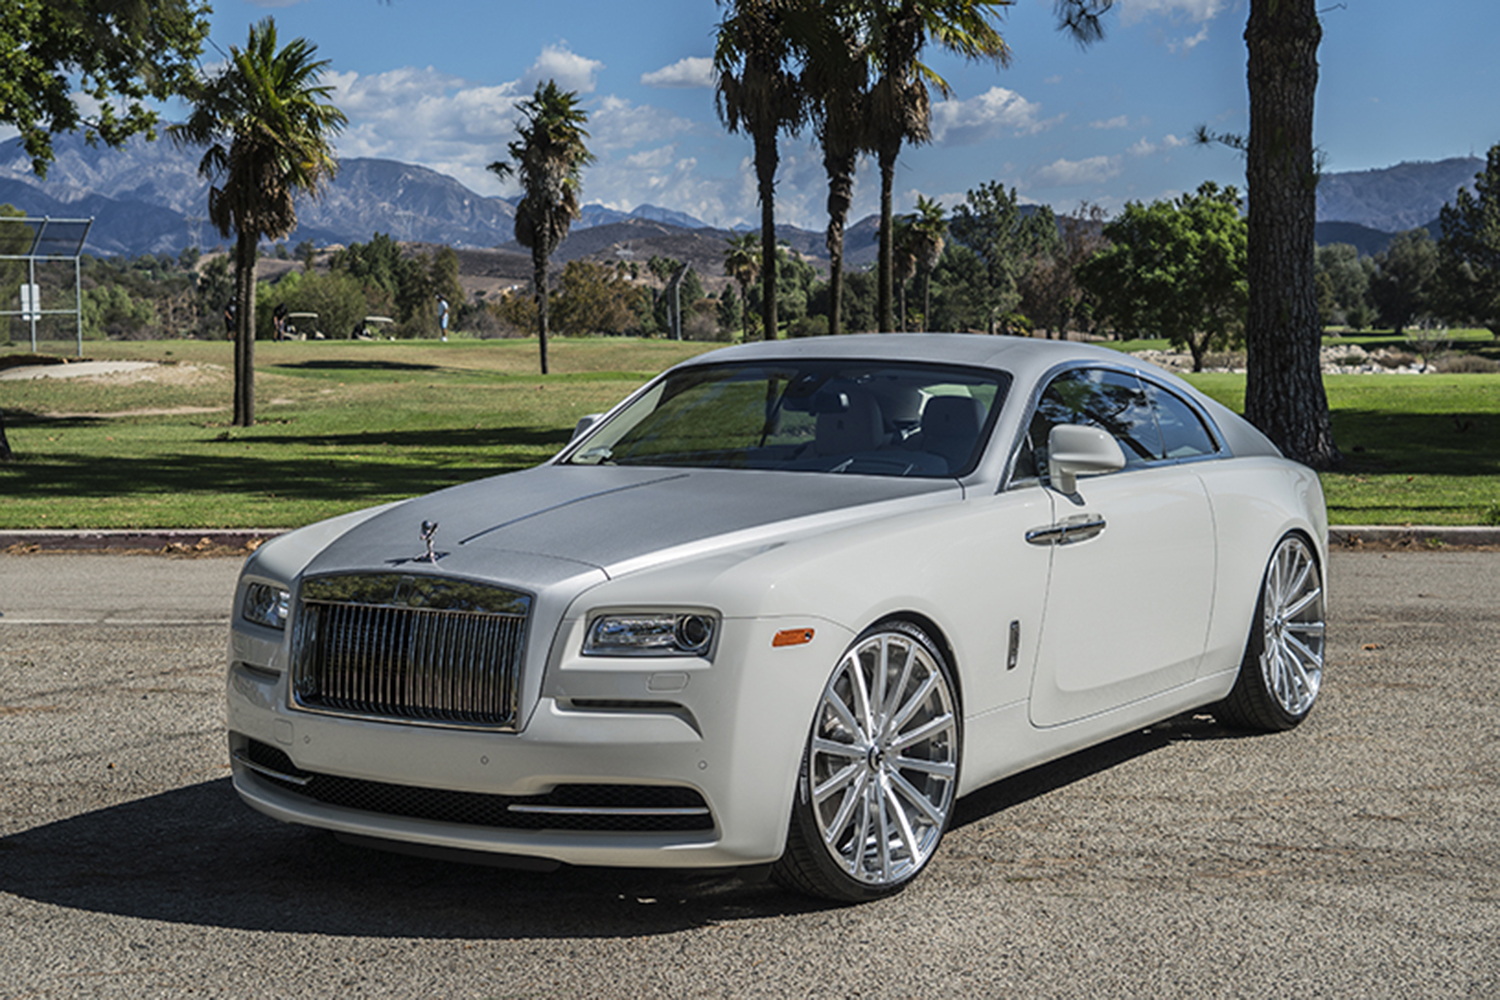 rolls royce wraith white and black. forgiatorollsf215 rolls royce wraith white and black